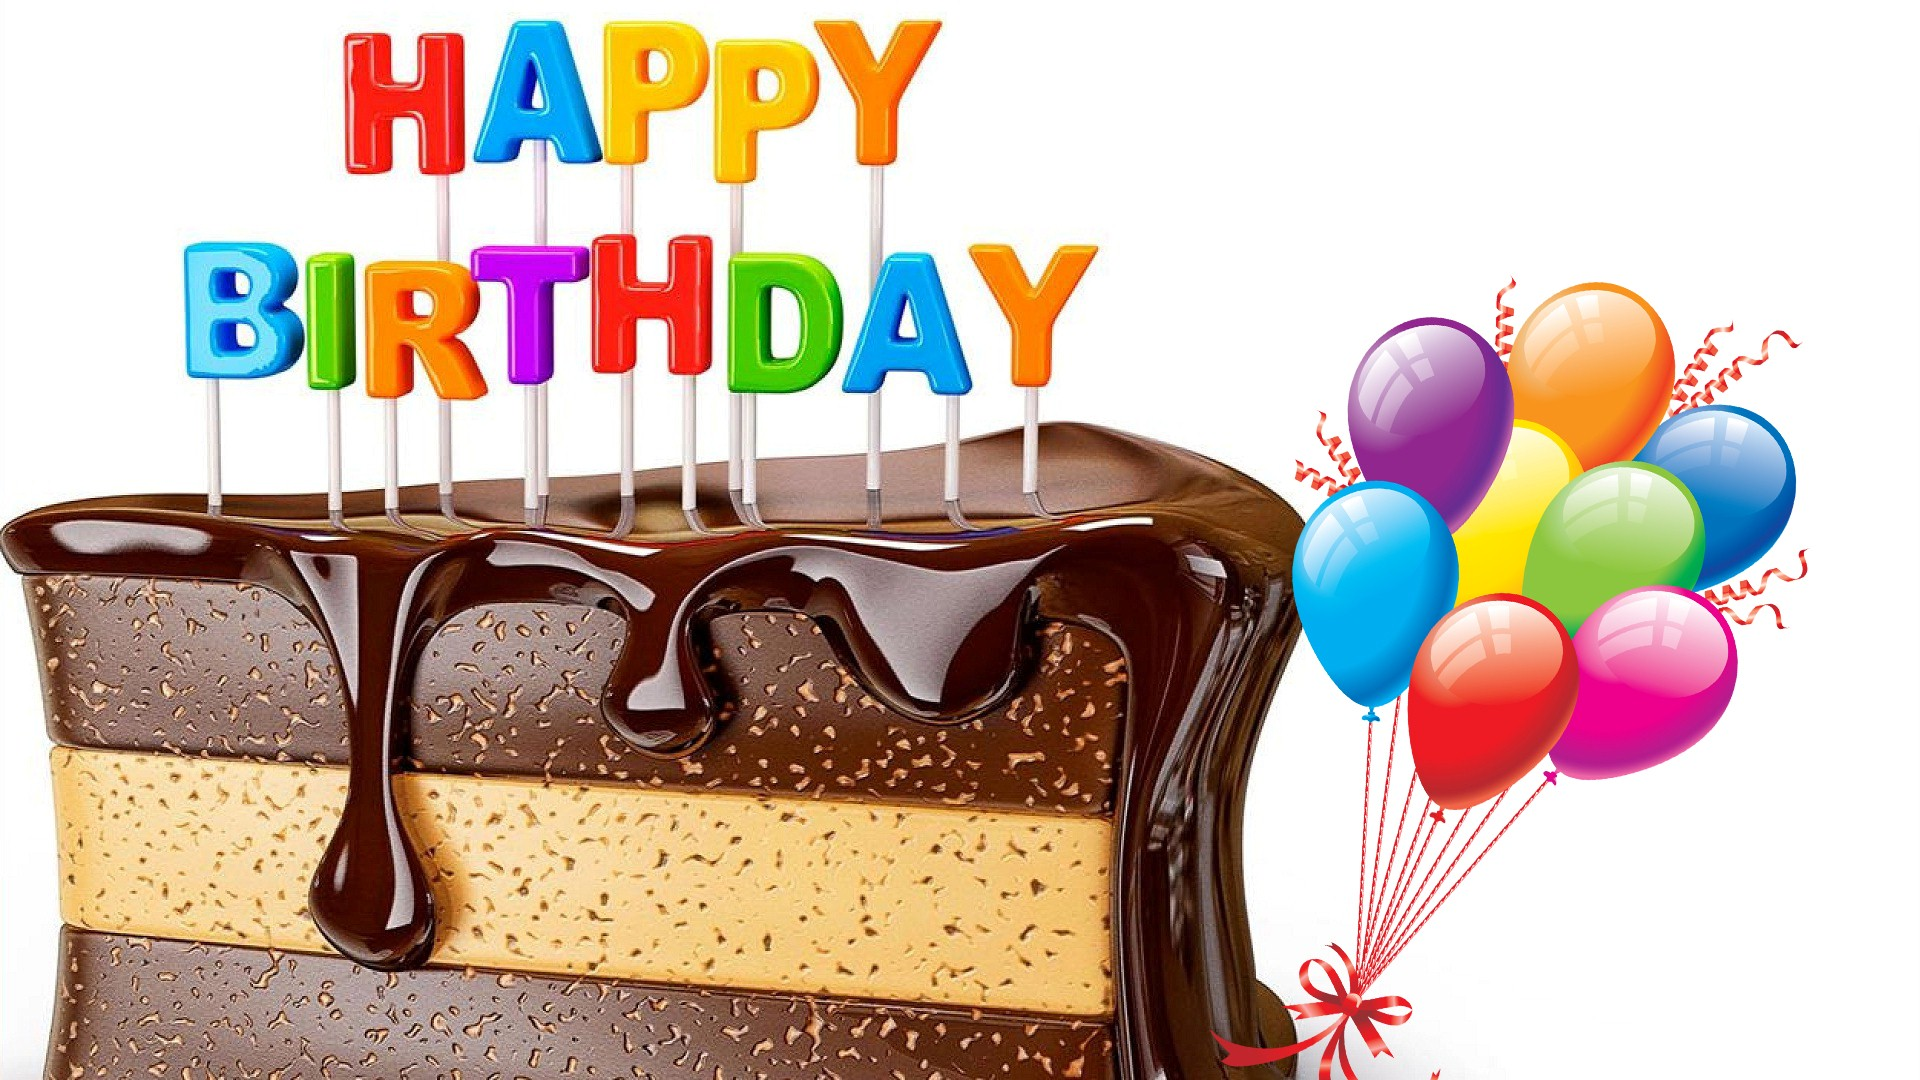 happy birthday hd images download ; Happy_Birthday_on_Cake_with_Balloon_HD_Wallpapers